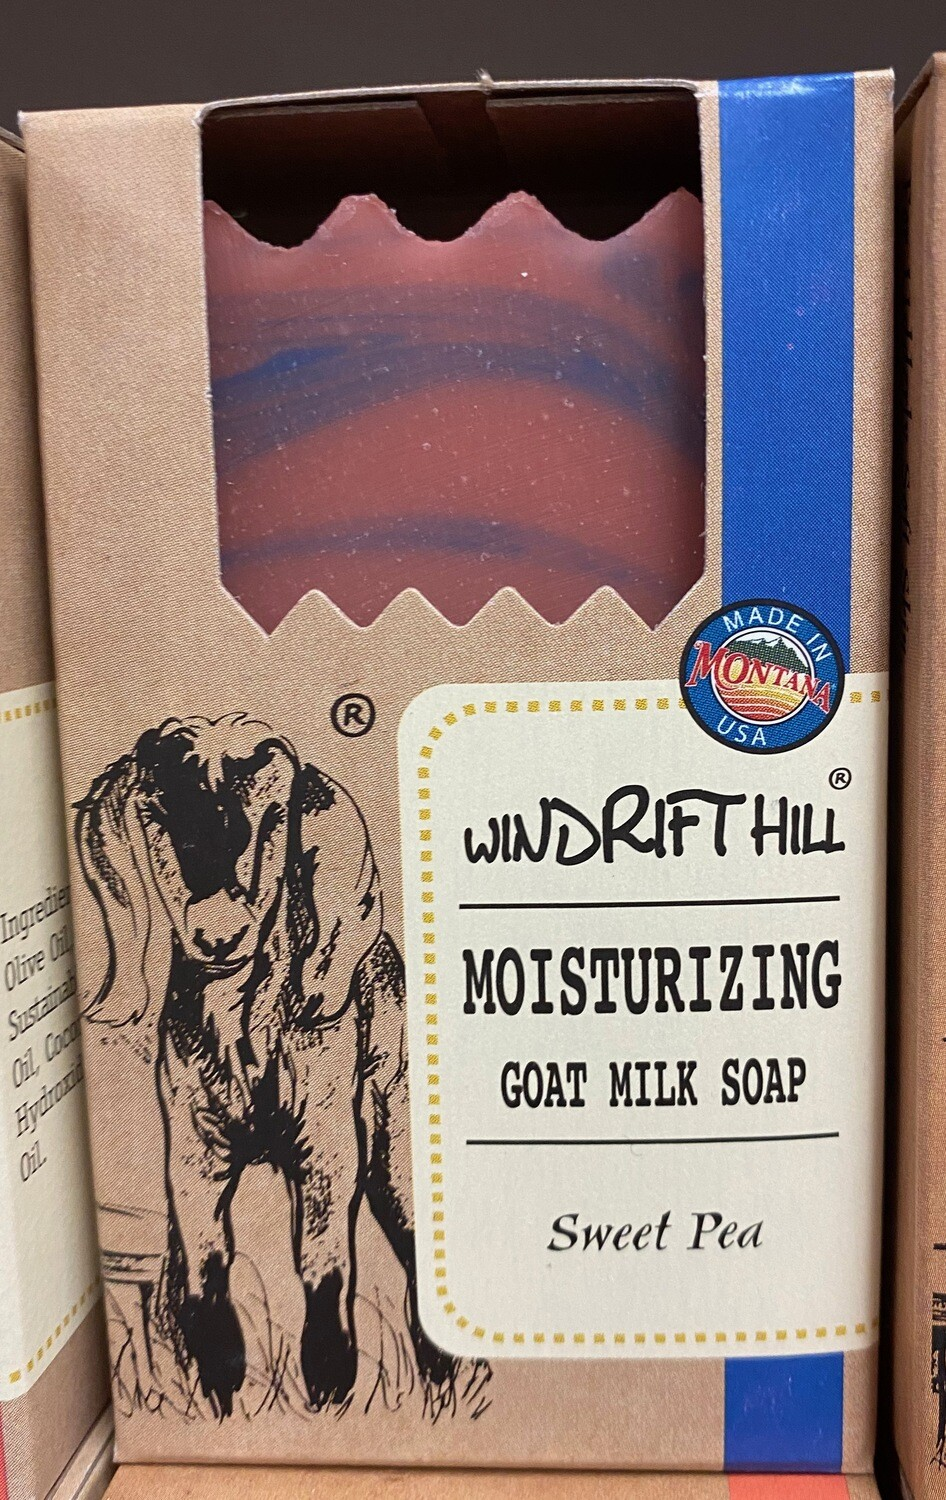 Windrift Hill/Sweet Pea soap